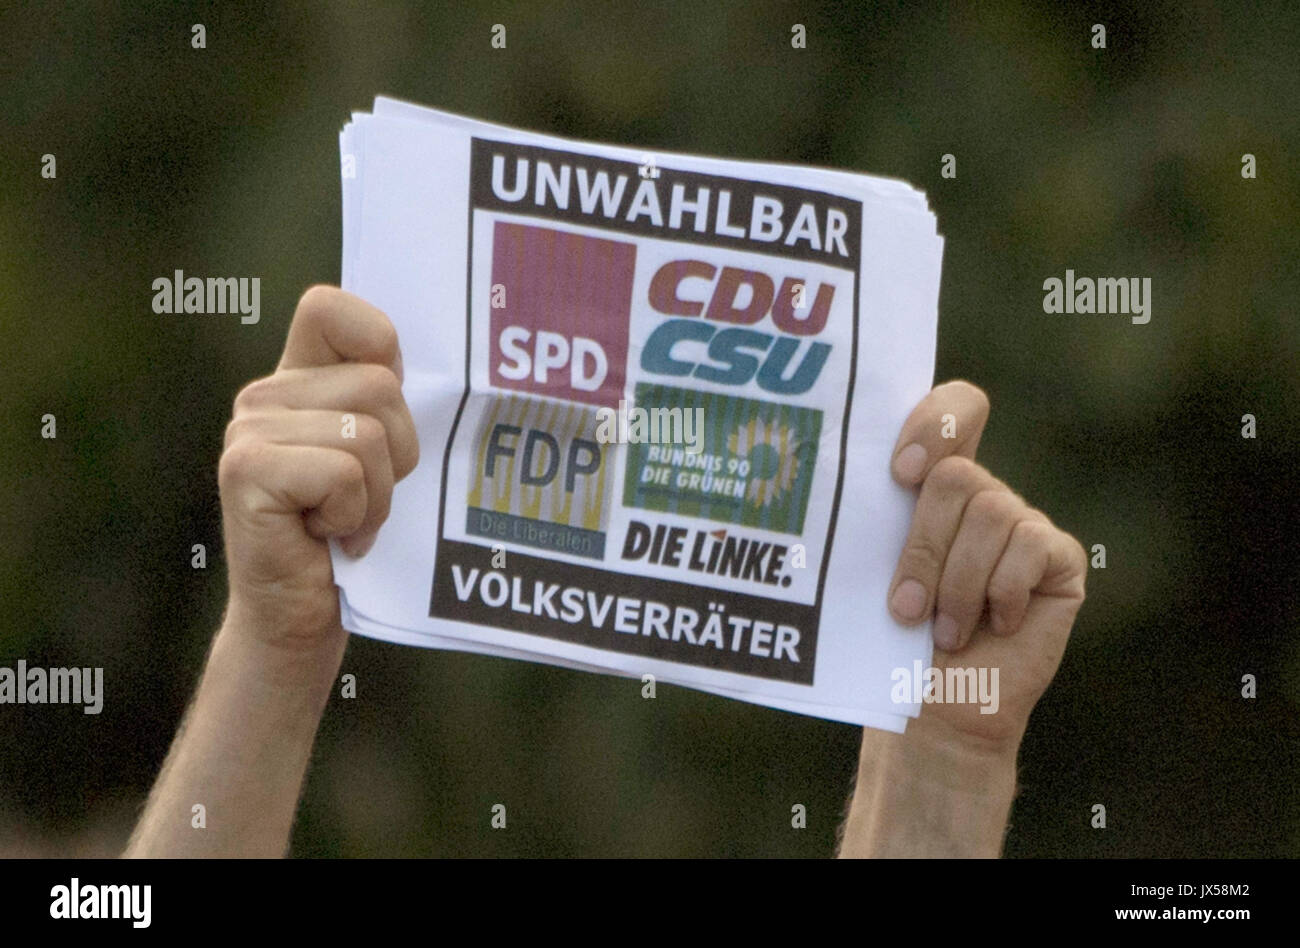 Gelnhausen, Germany. 14th Aug, 2017. A protestor holds up a sign saying 'Volksverraeter' (lit. betrayer of the nation) Stock Photo